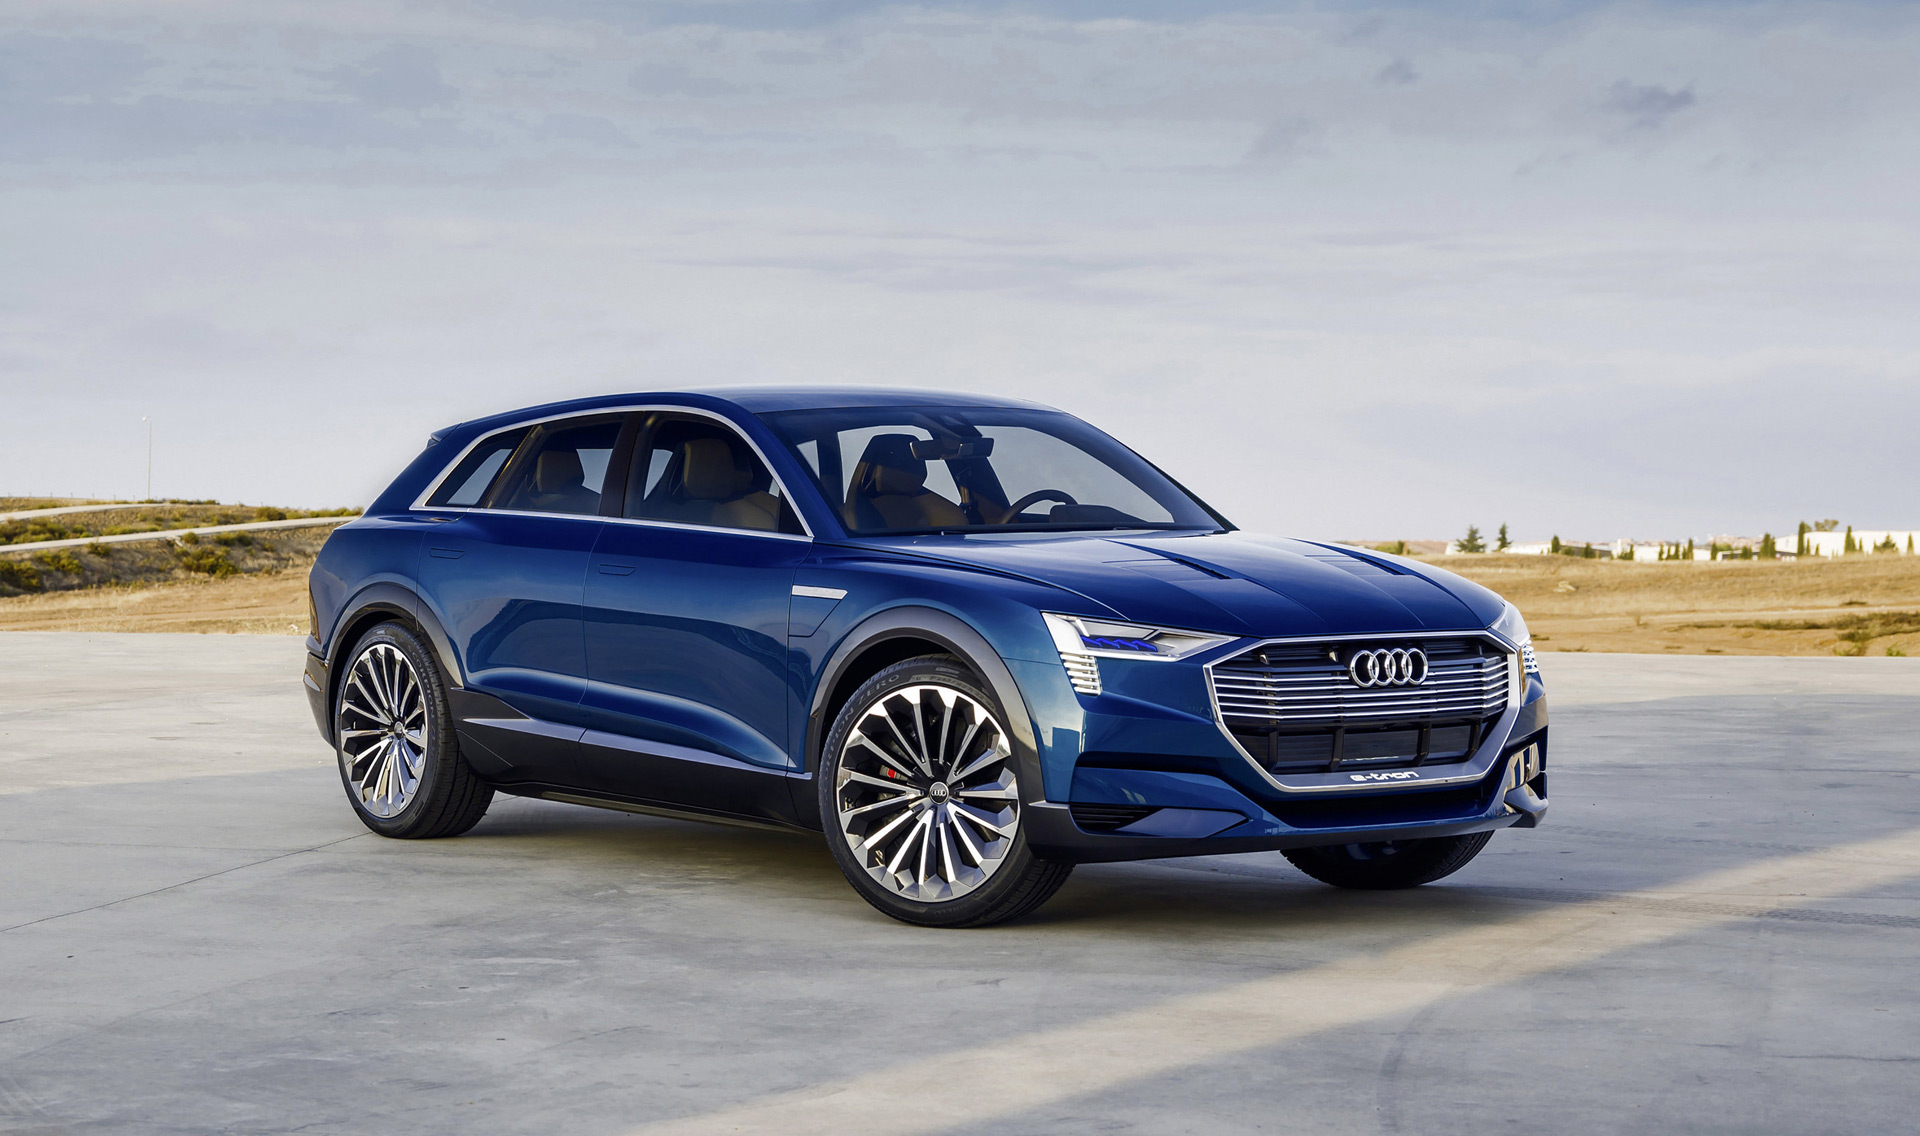 plus cars side and reviews motor canada premium sedan audi trend en view rating